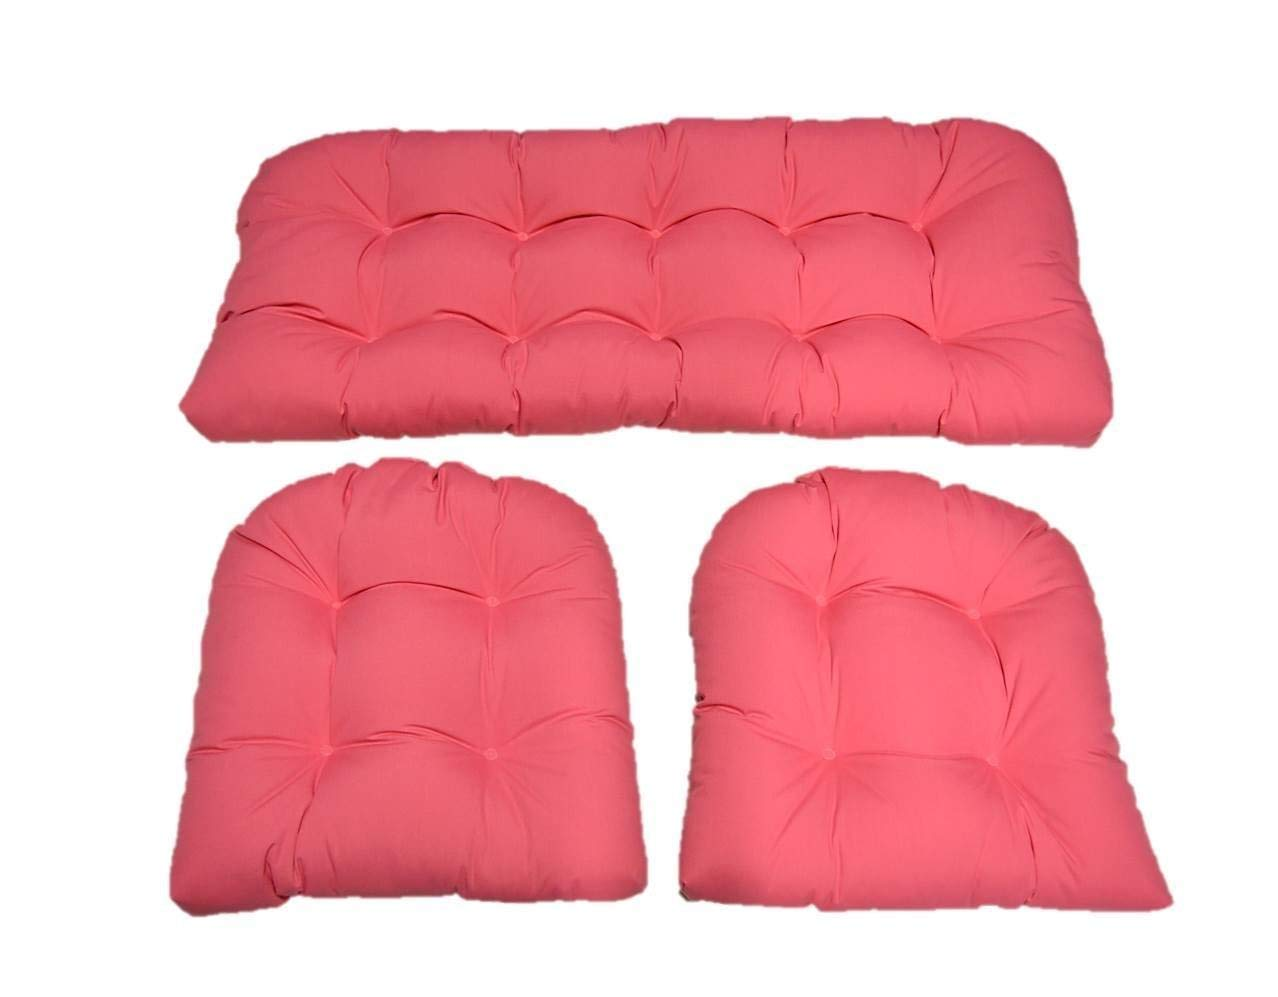 3 Piece Wicker Cushion Set - Solid Rose petal Pink Indoor / Outdoor Fabric Cushion for Wicker Loveseat Settee & 2 Matching Chair Cushions